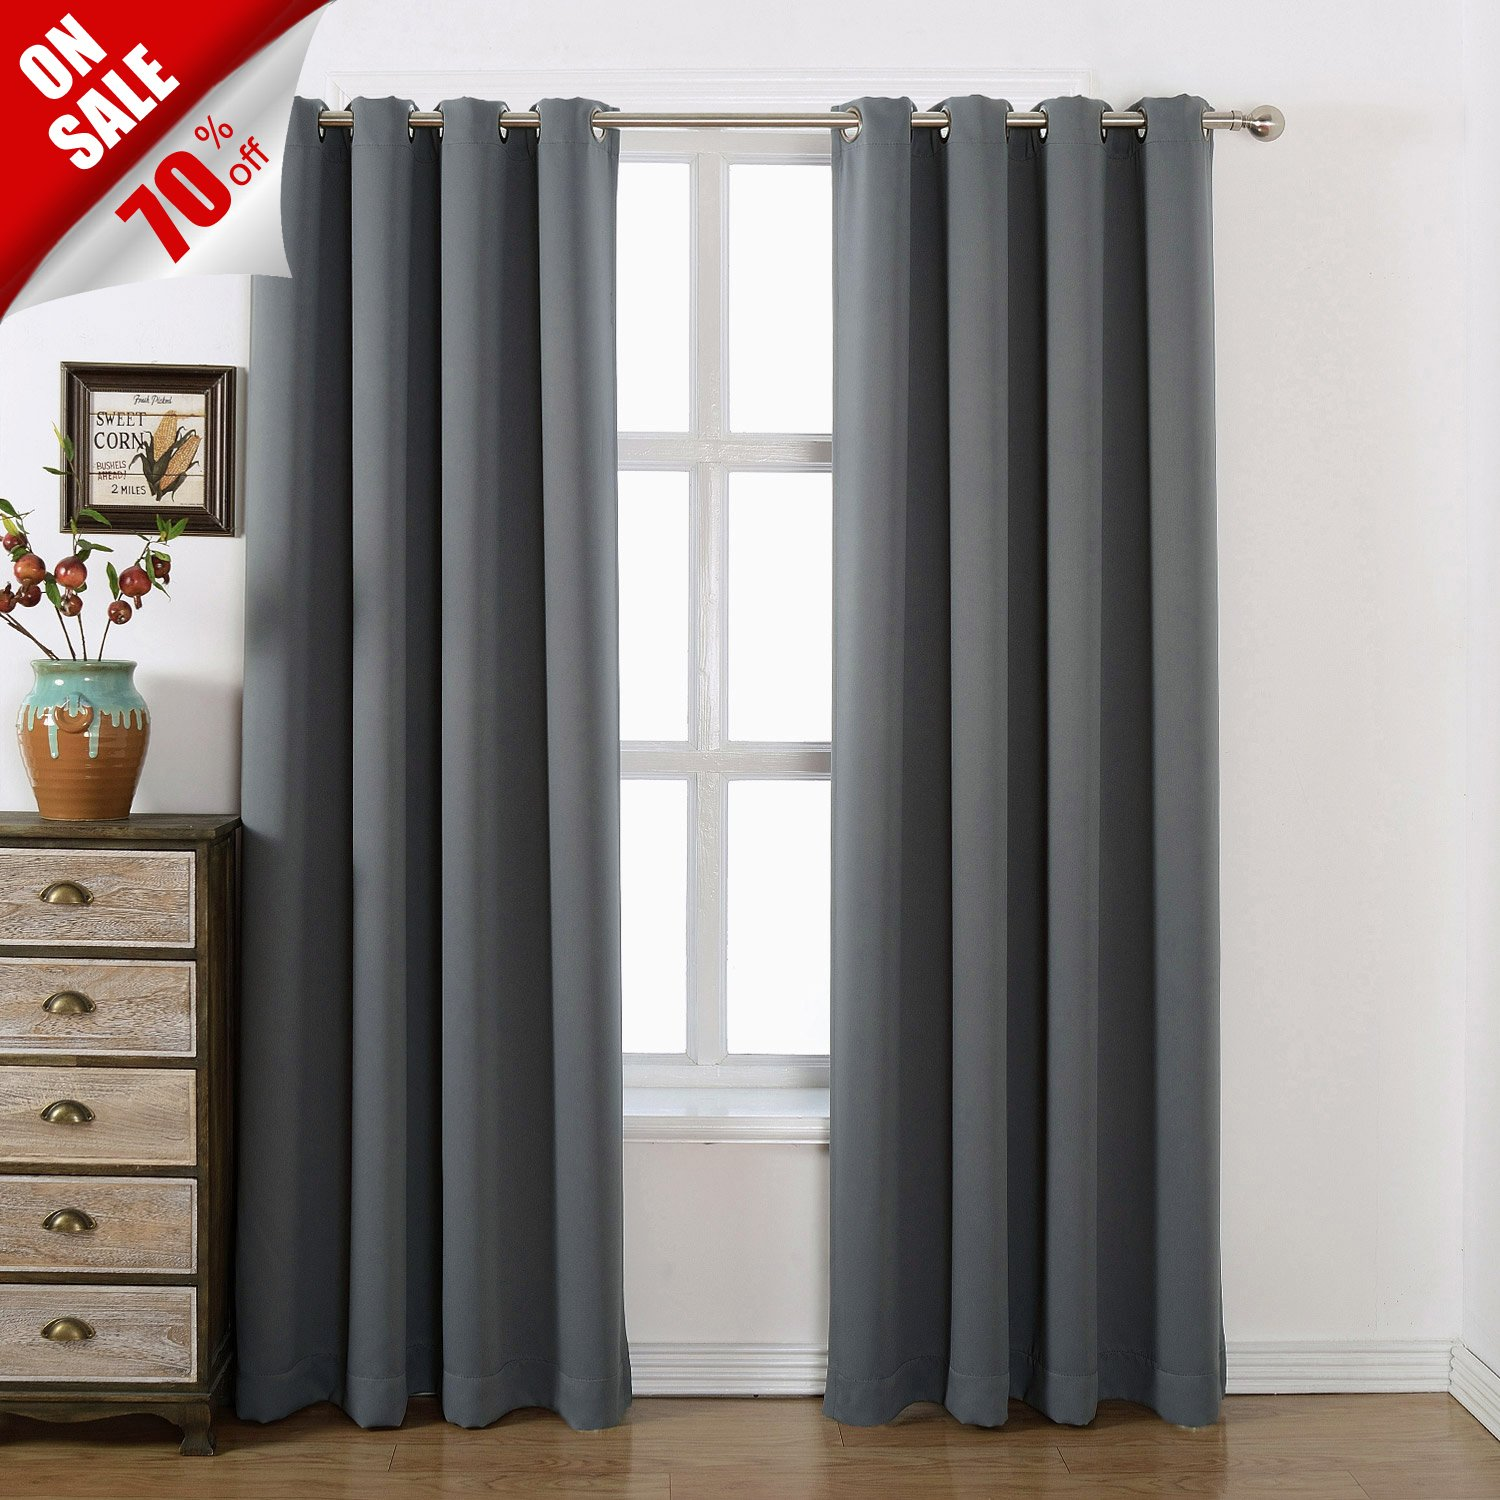 Grommet Top Blackout Curtains With Tie Back Charcoal Grey